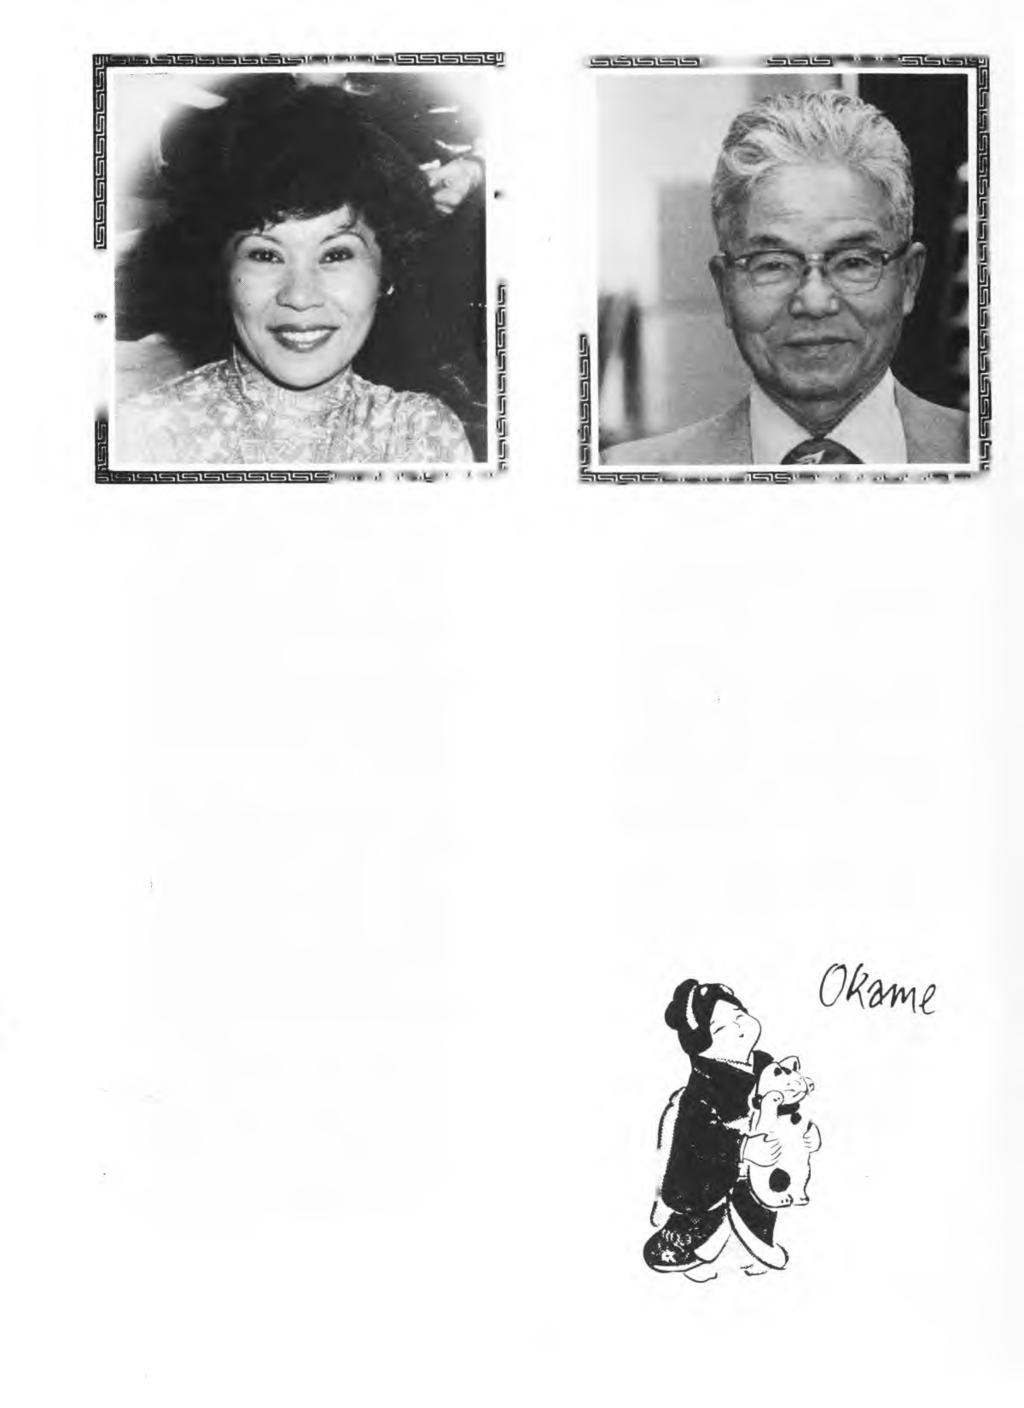 BEATRICE SHIMABUKURO Mrs. Beatrice Shim abukuro was born on October 21, 1932, in Honolulu, Hawaii. She is the daughter of Joso and Kamado Goya.